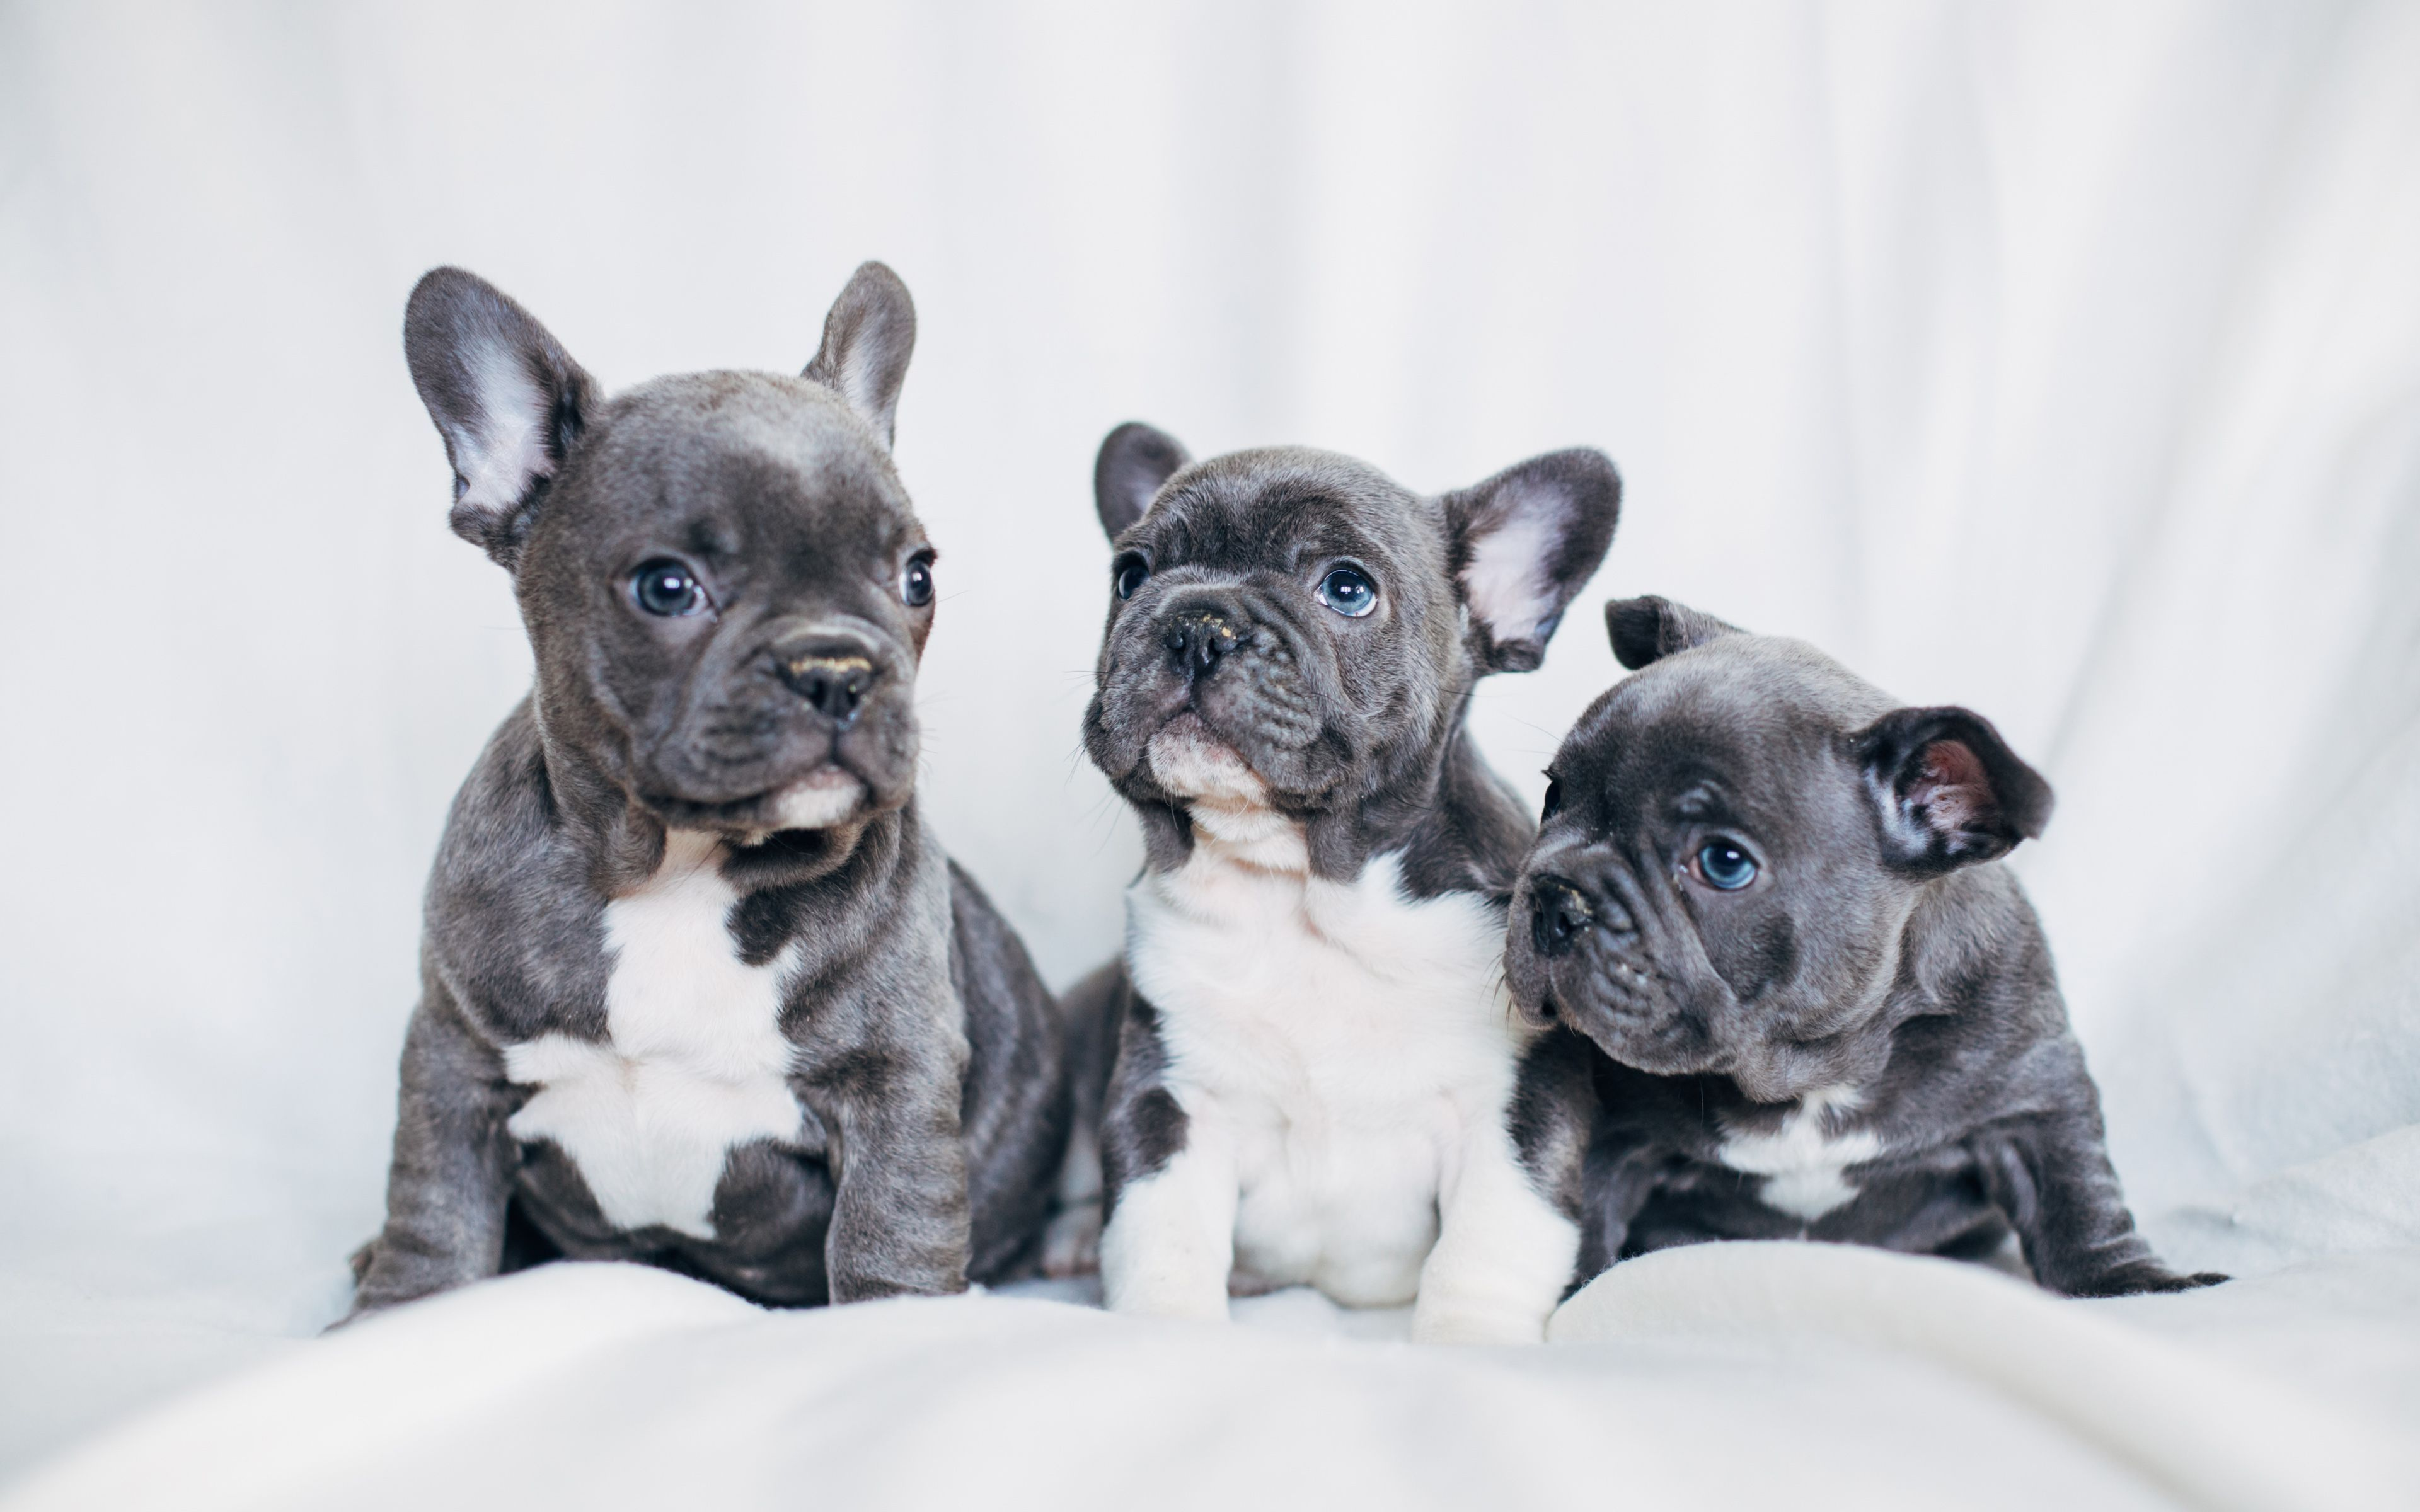 French Bulldogs Wallpapers Wallpaper Cave French Bulldog Hd Desktop Wallpaper High Defini Bulldog Puppies White French Bulldog Puppies French Bulldog Puppies